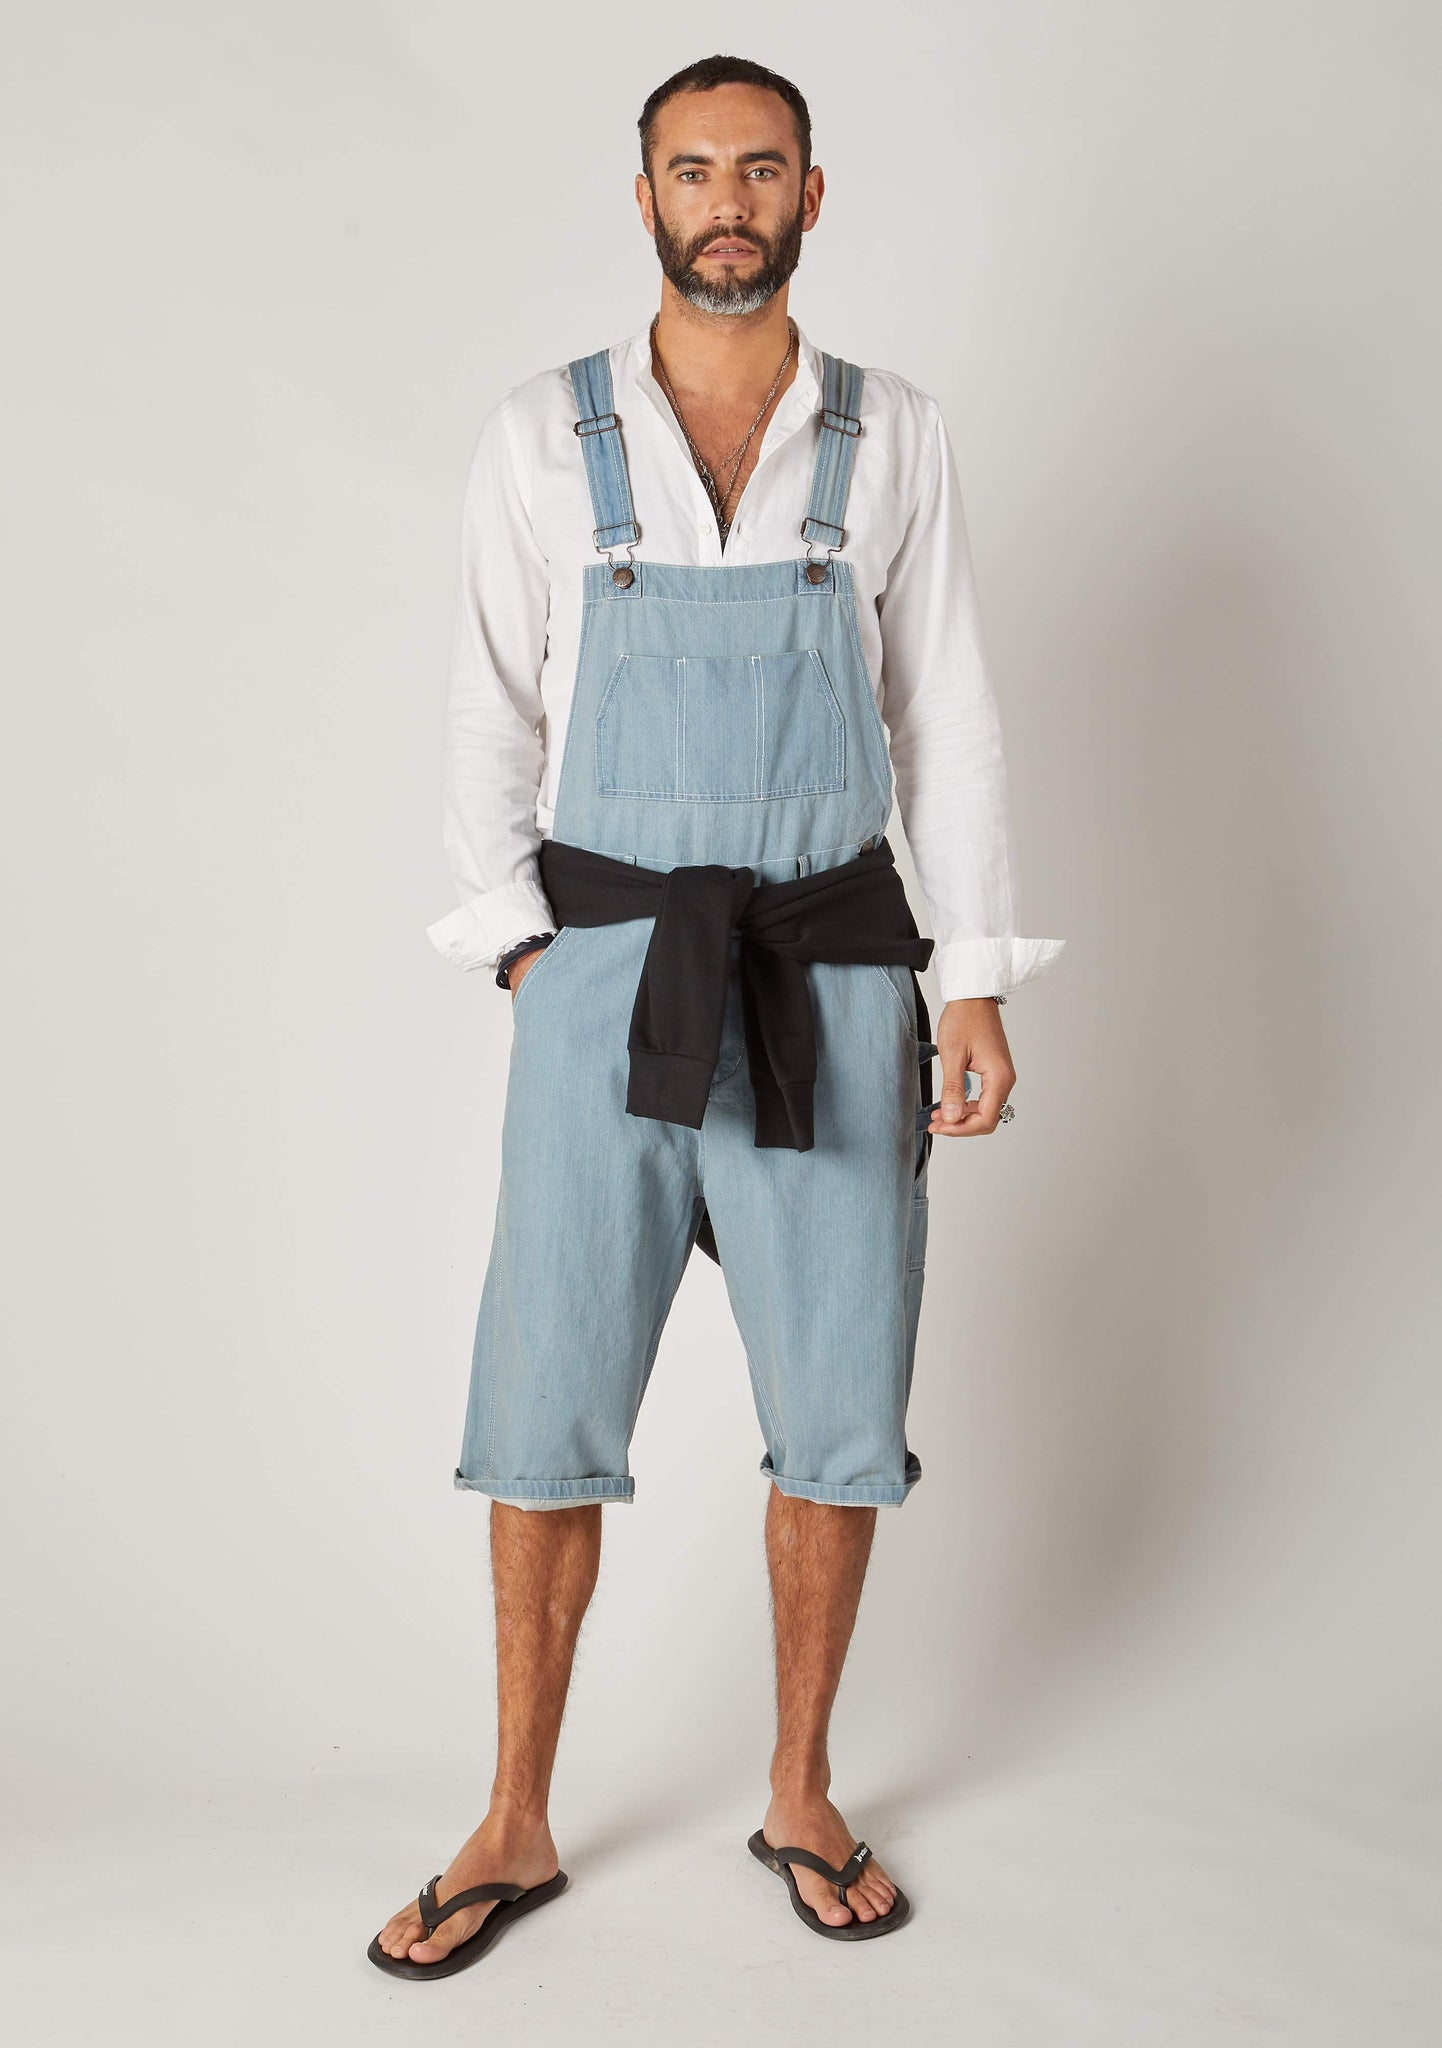 Full frontal pose looking forwards with hand in right pocket, wearing dungarees shorts for men with adjustable straps up.